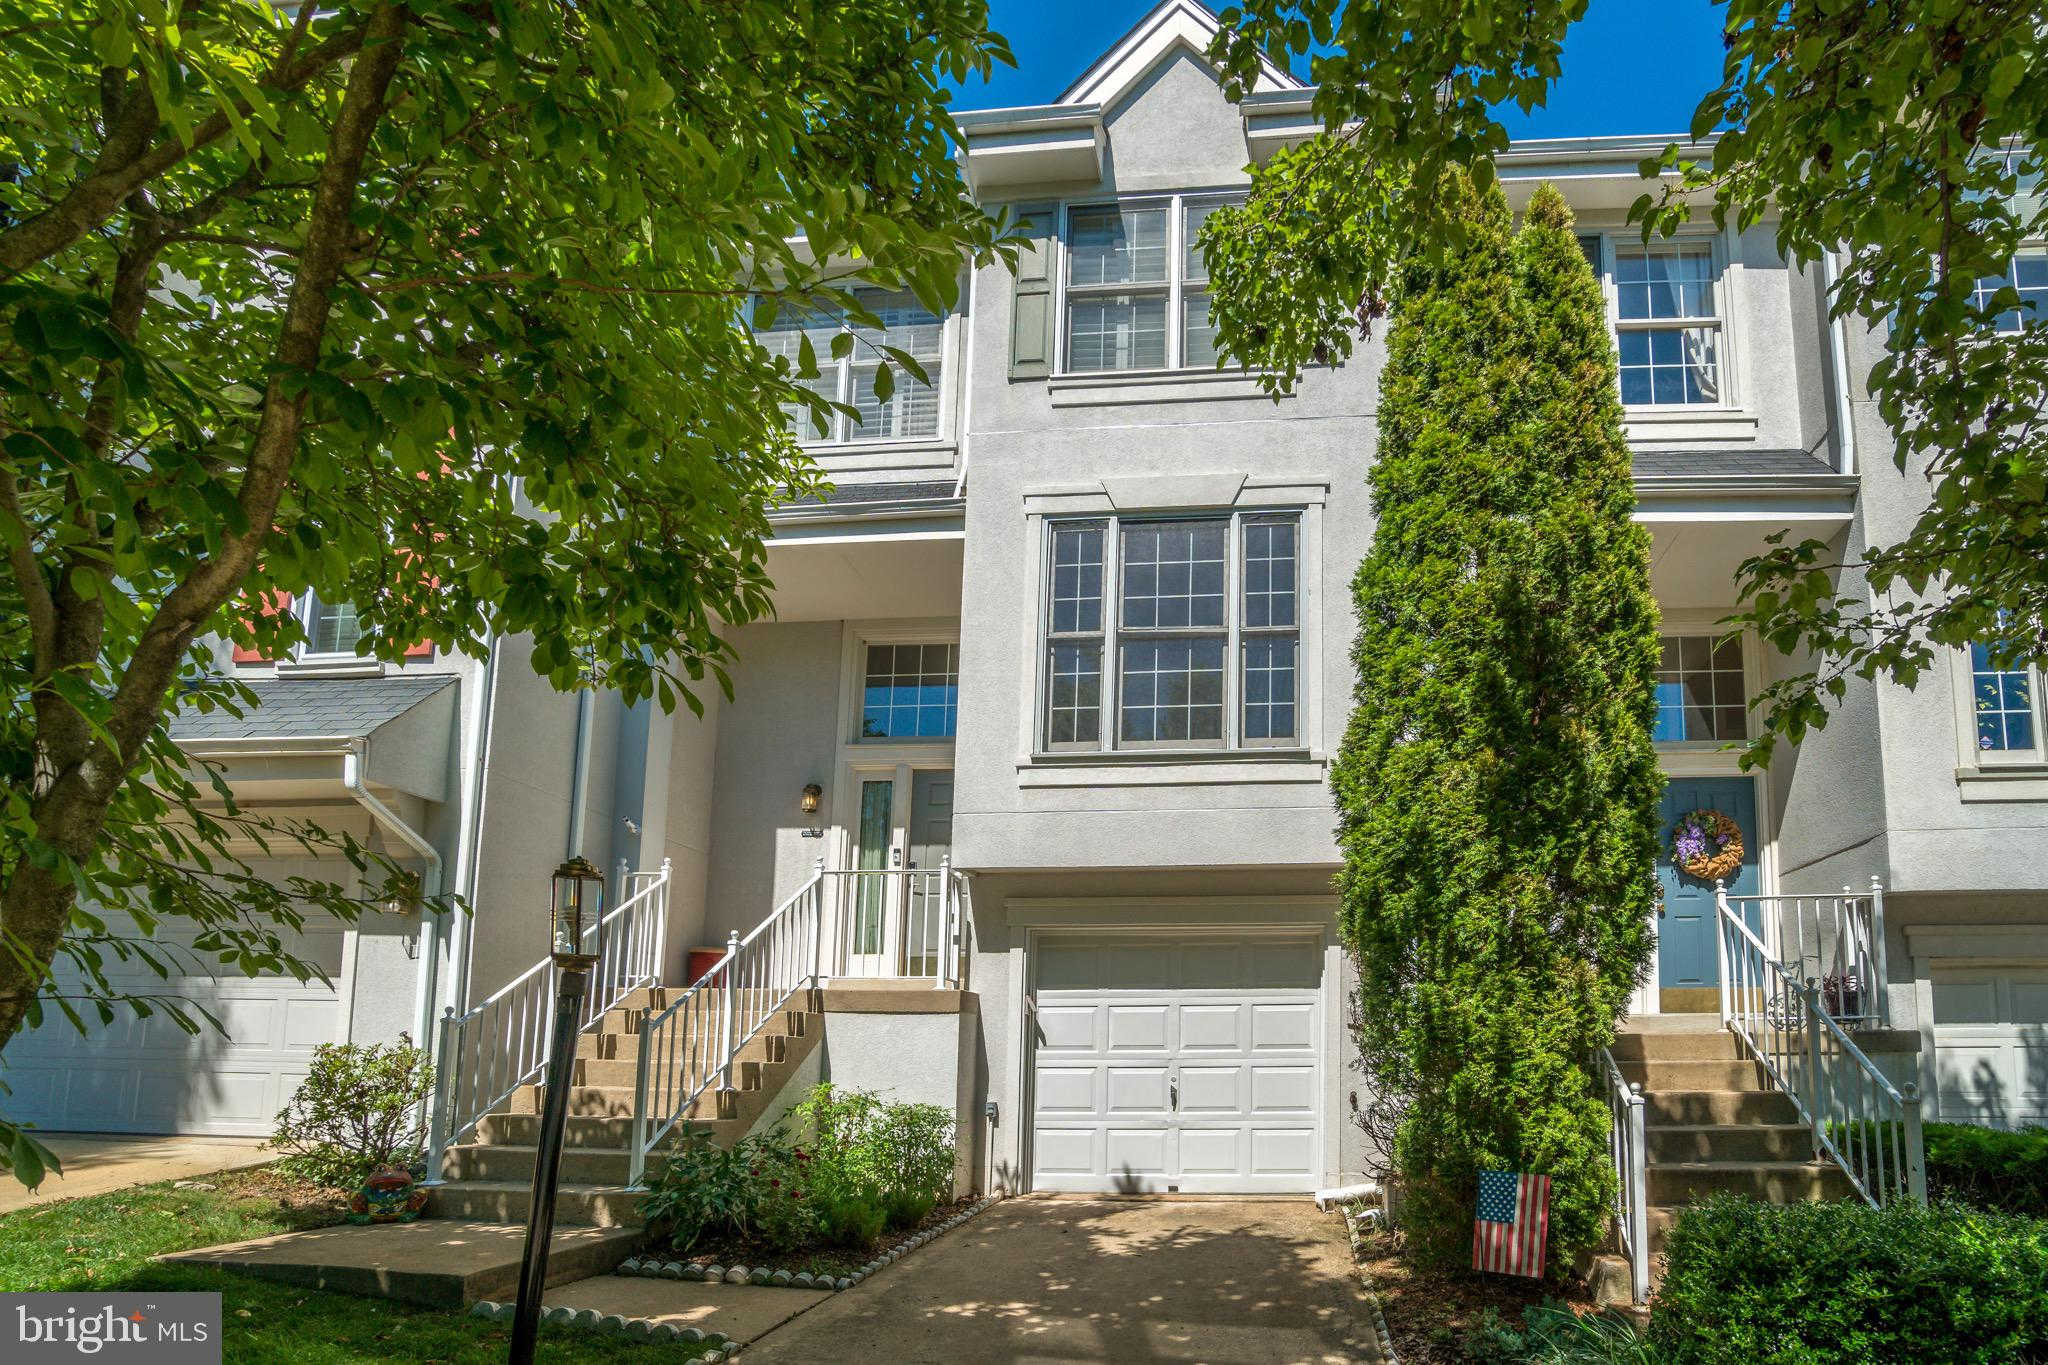 1311 Park Garden Lane, Reston, VA 20194 now has a new price of $574,000!